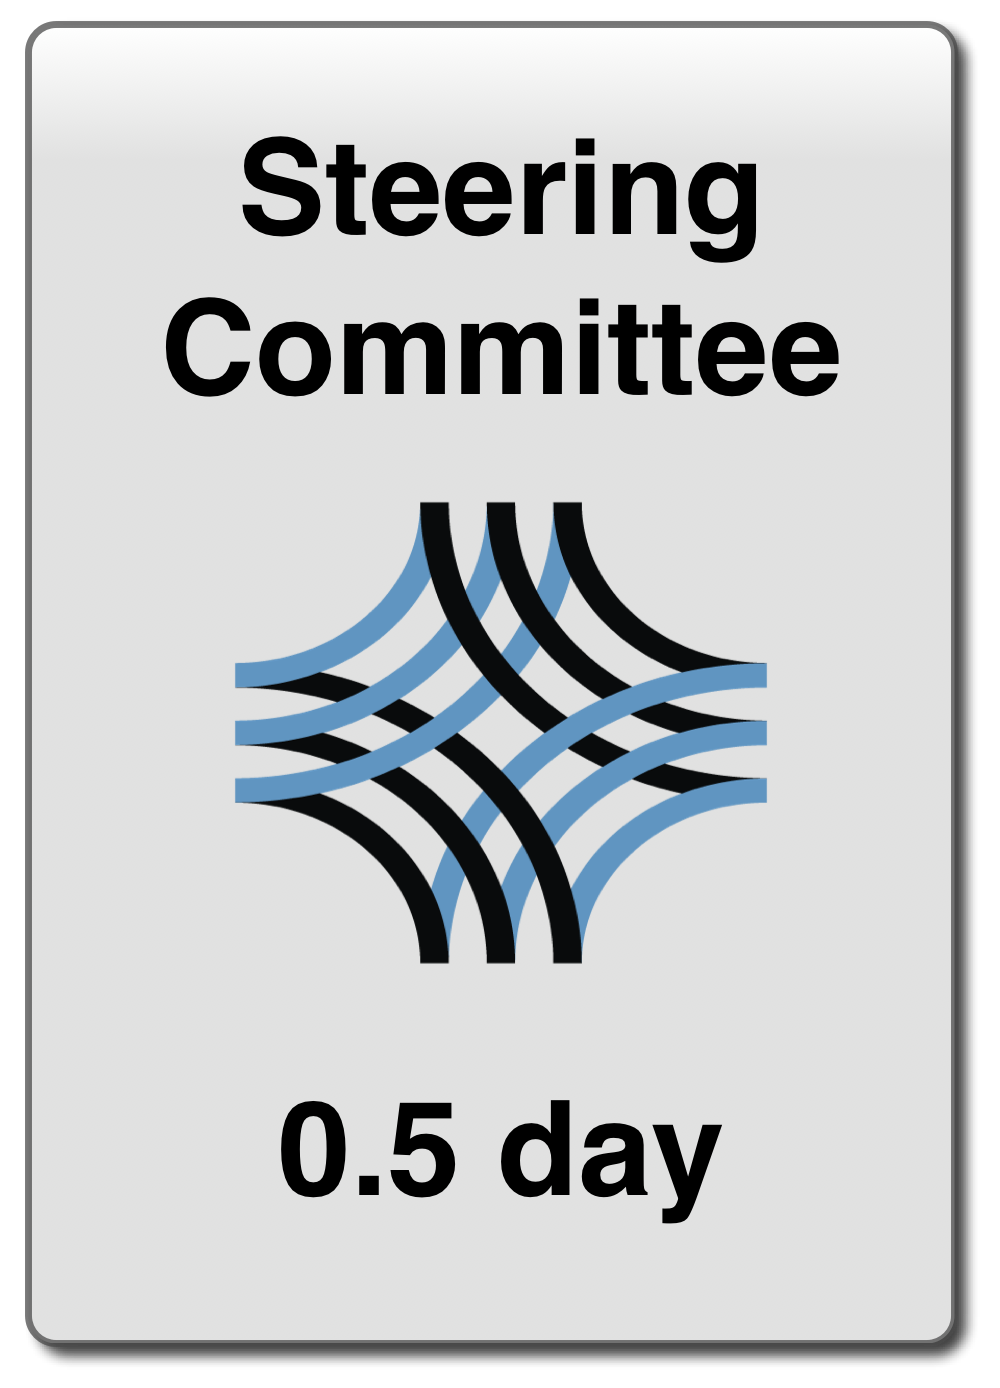 Steering Committee training